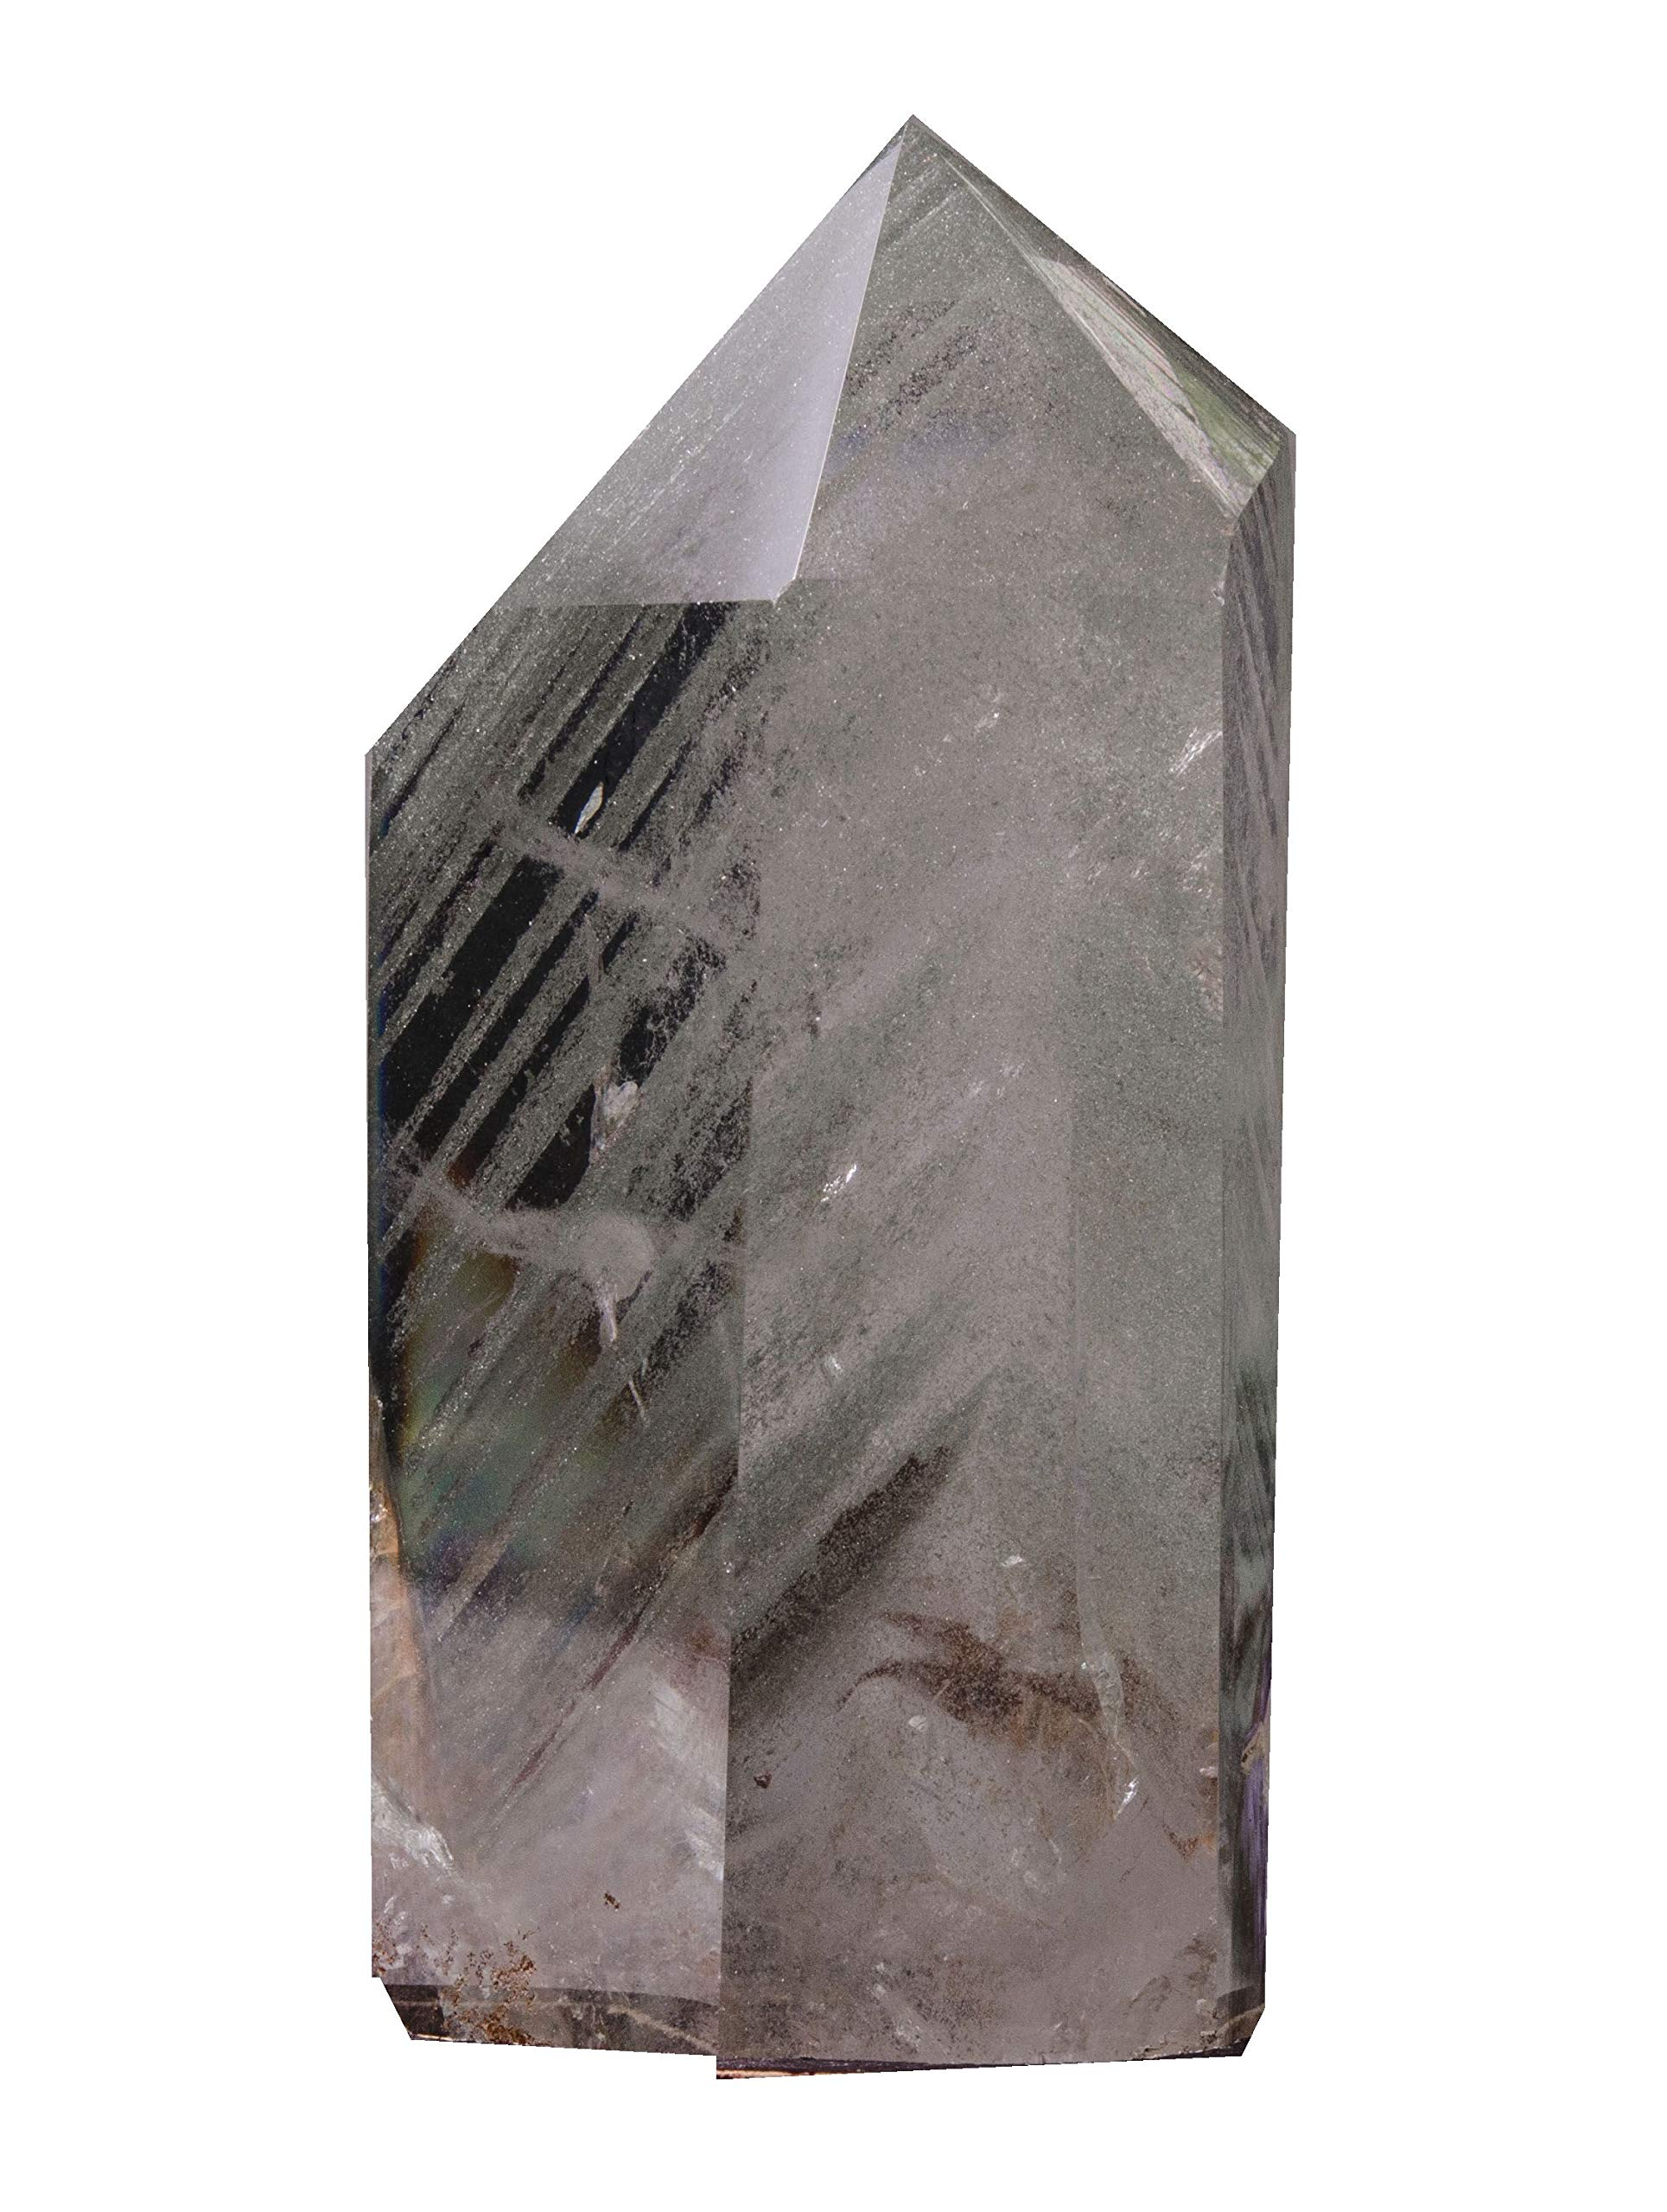 yippee Natural Large Green Phantom Crystal Quartz Tower/Layers Included Garden Crystal Point/Scenic Quartz/Chlorite Inclusion Crystal-